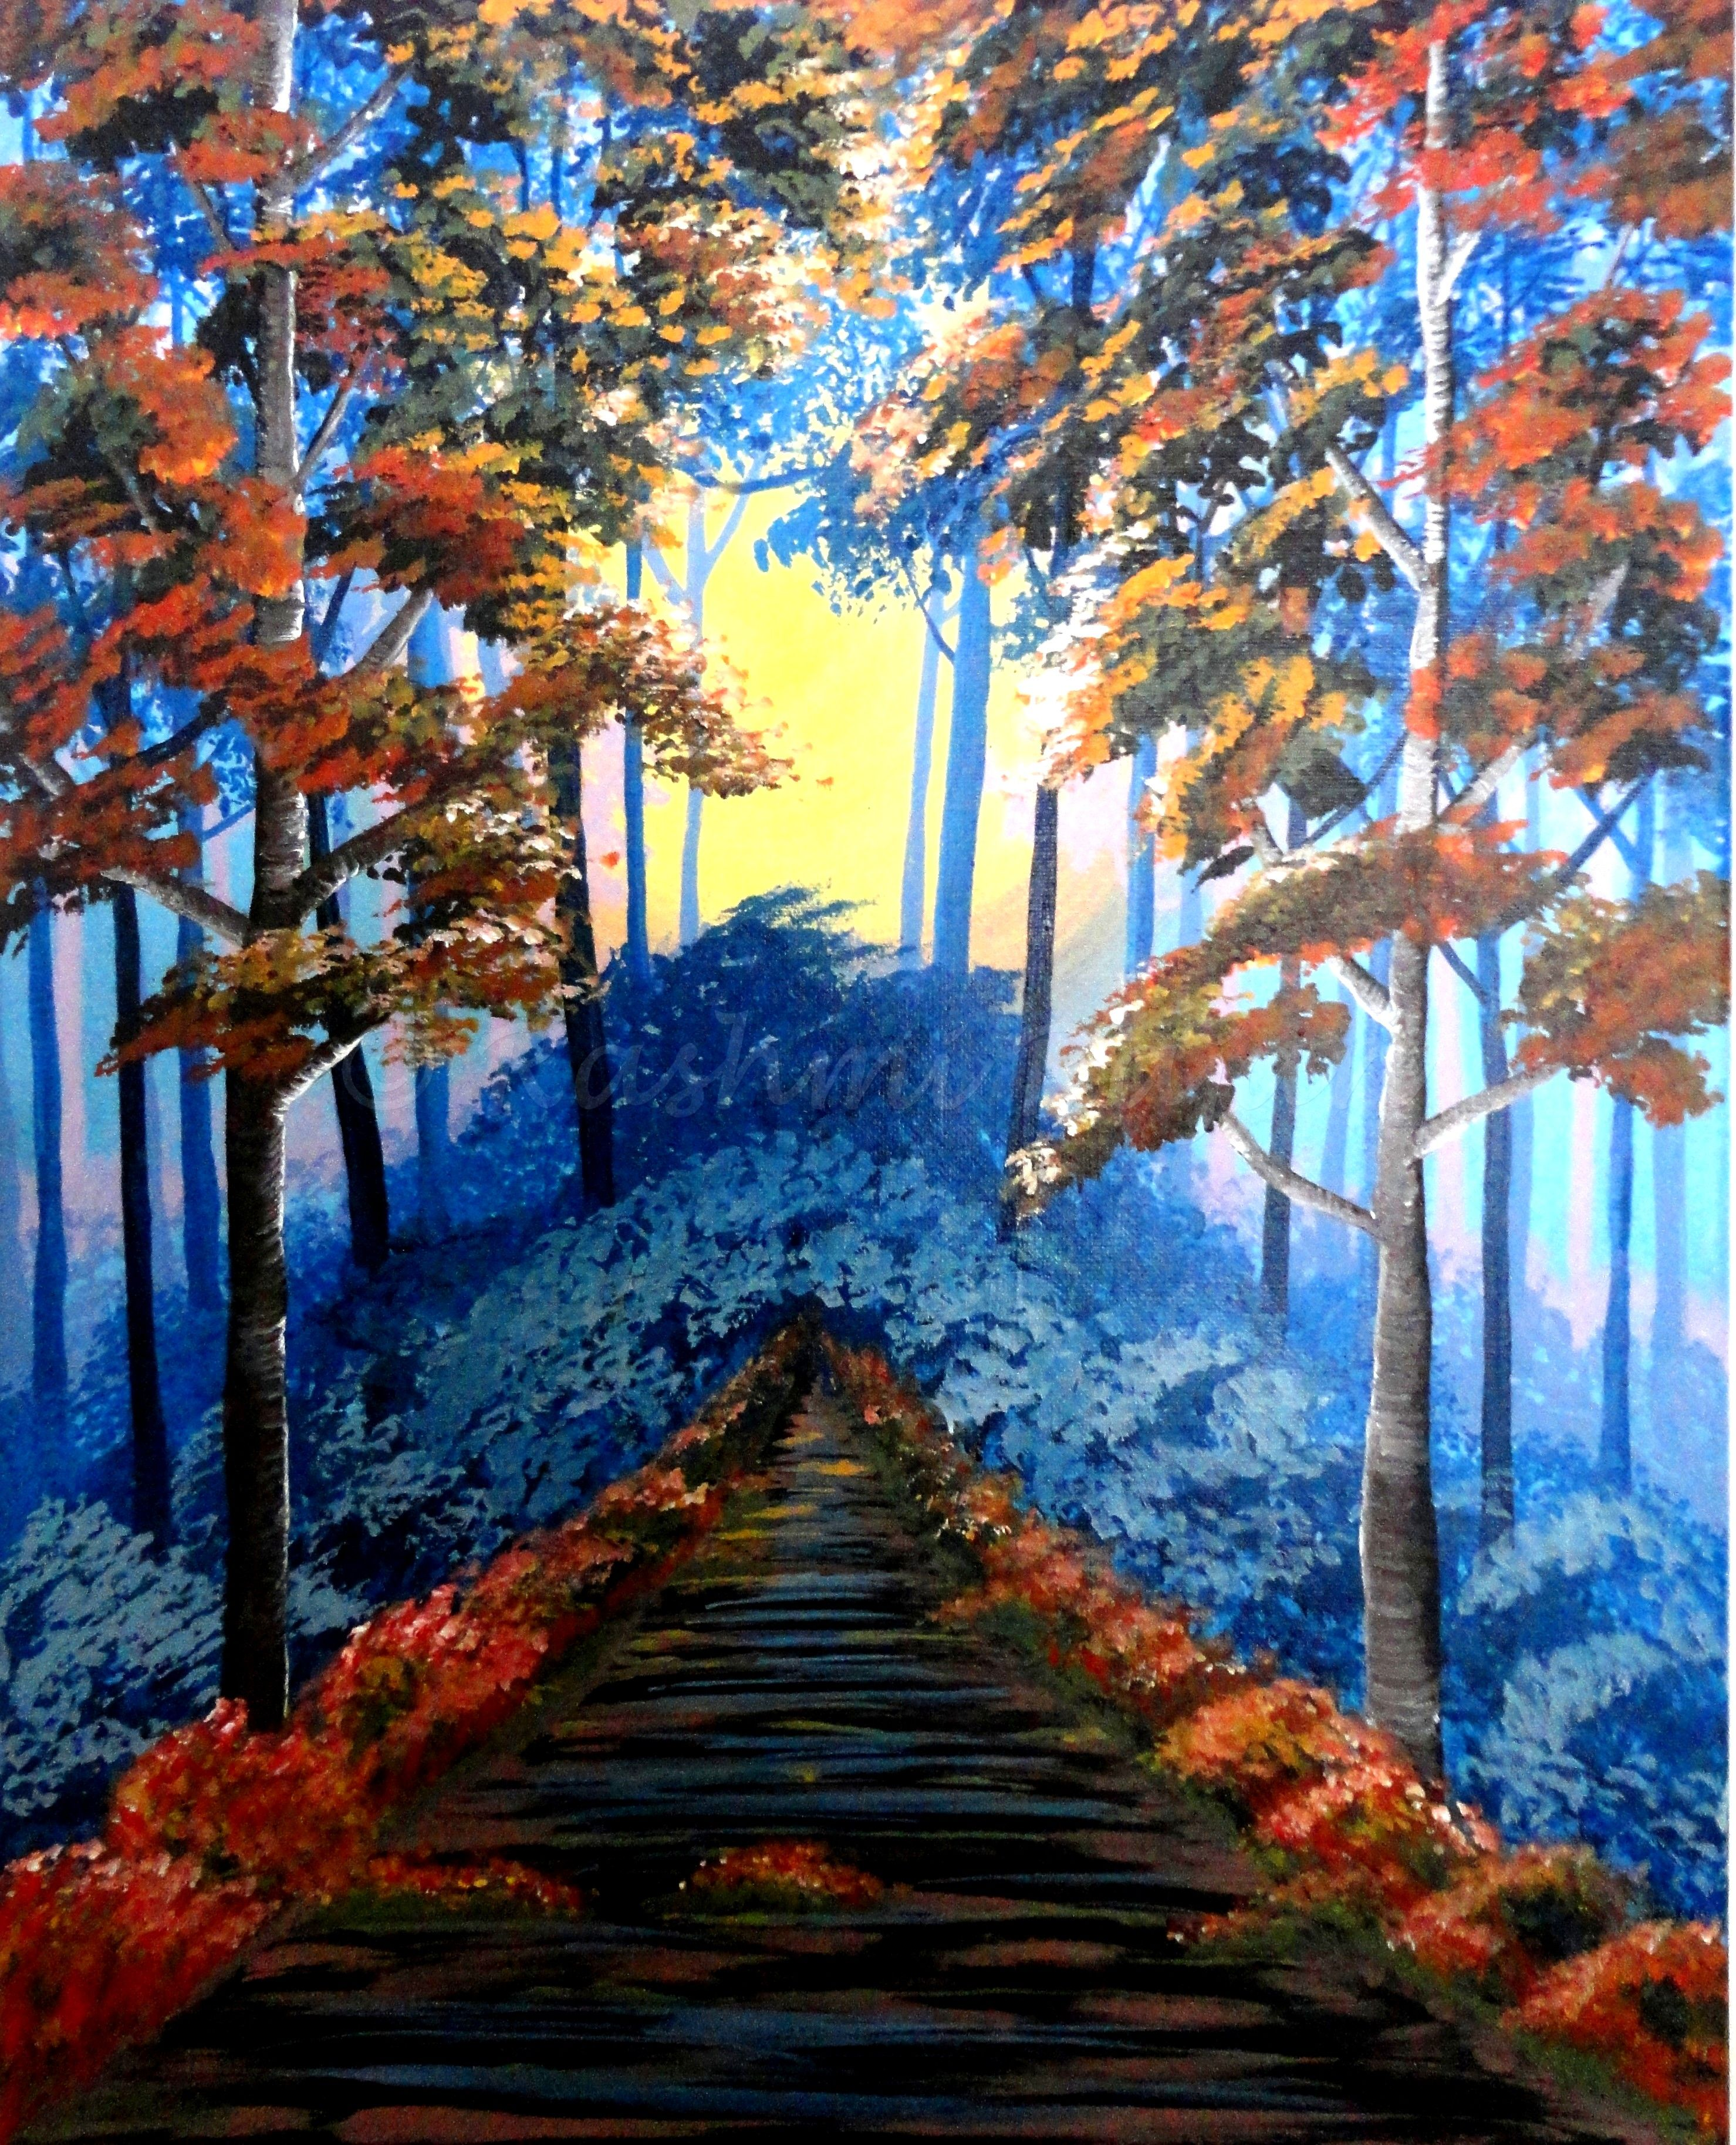 """Walk into the mist-laden forest with this painting """"Into the Woods"""" - An acrylic painting on a 16 x 20 inch canvas. Ready to be hung. Priced at $250. To purchase, visit www.facebook.com/shop.magicfingers or write to magicfingers081@gmail.com"""